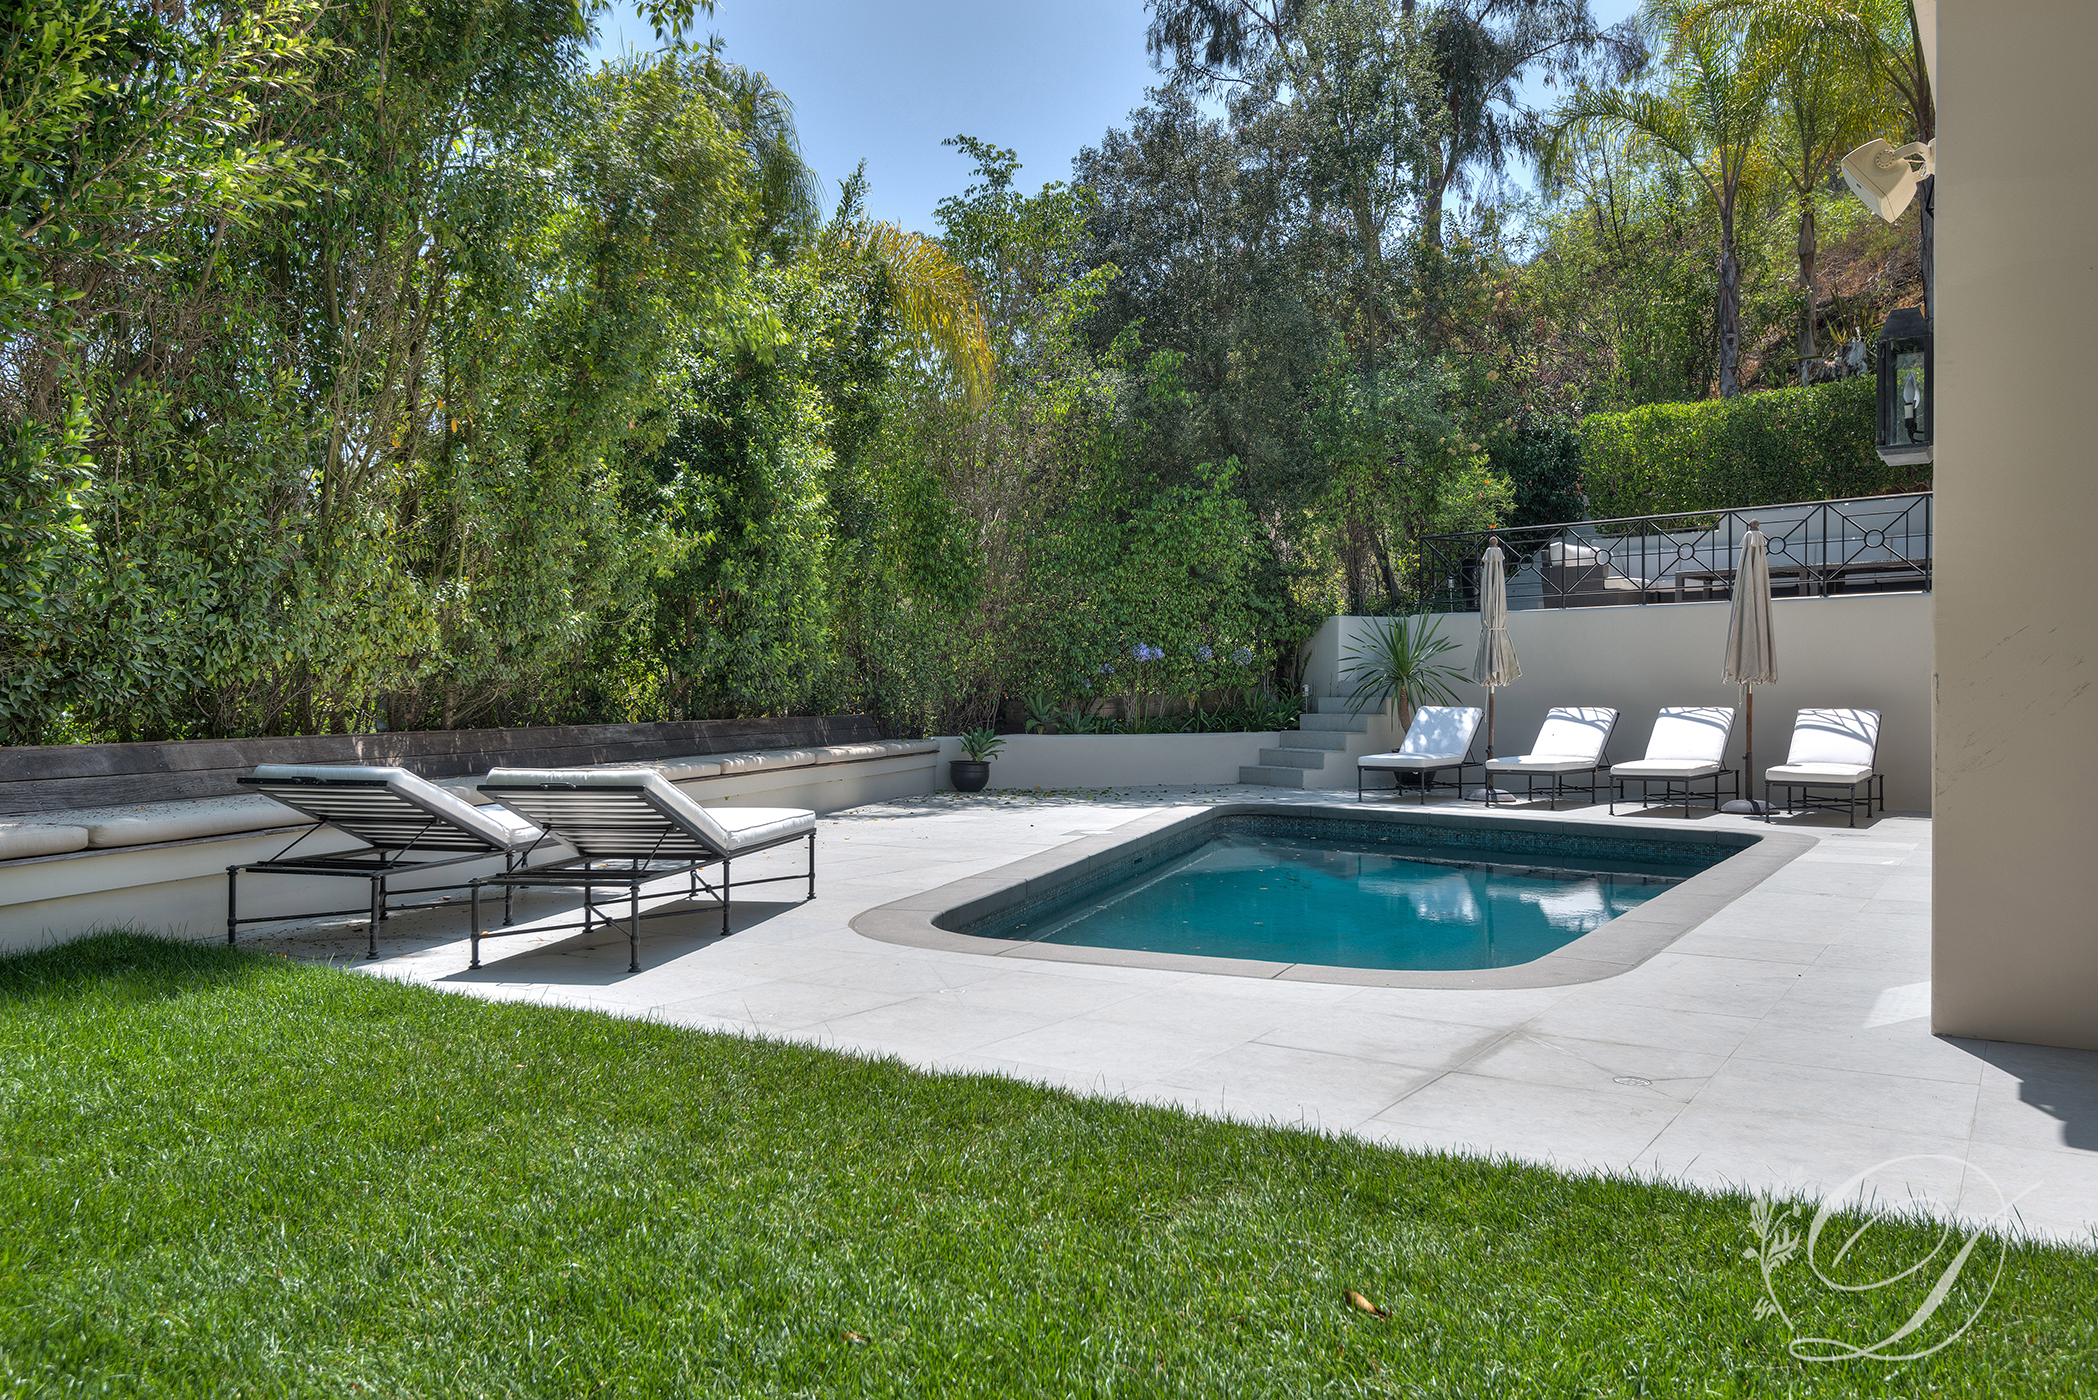 006_Exterior_Beverly-Hills-Pool-